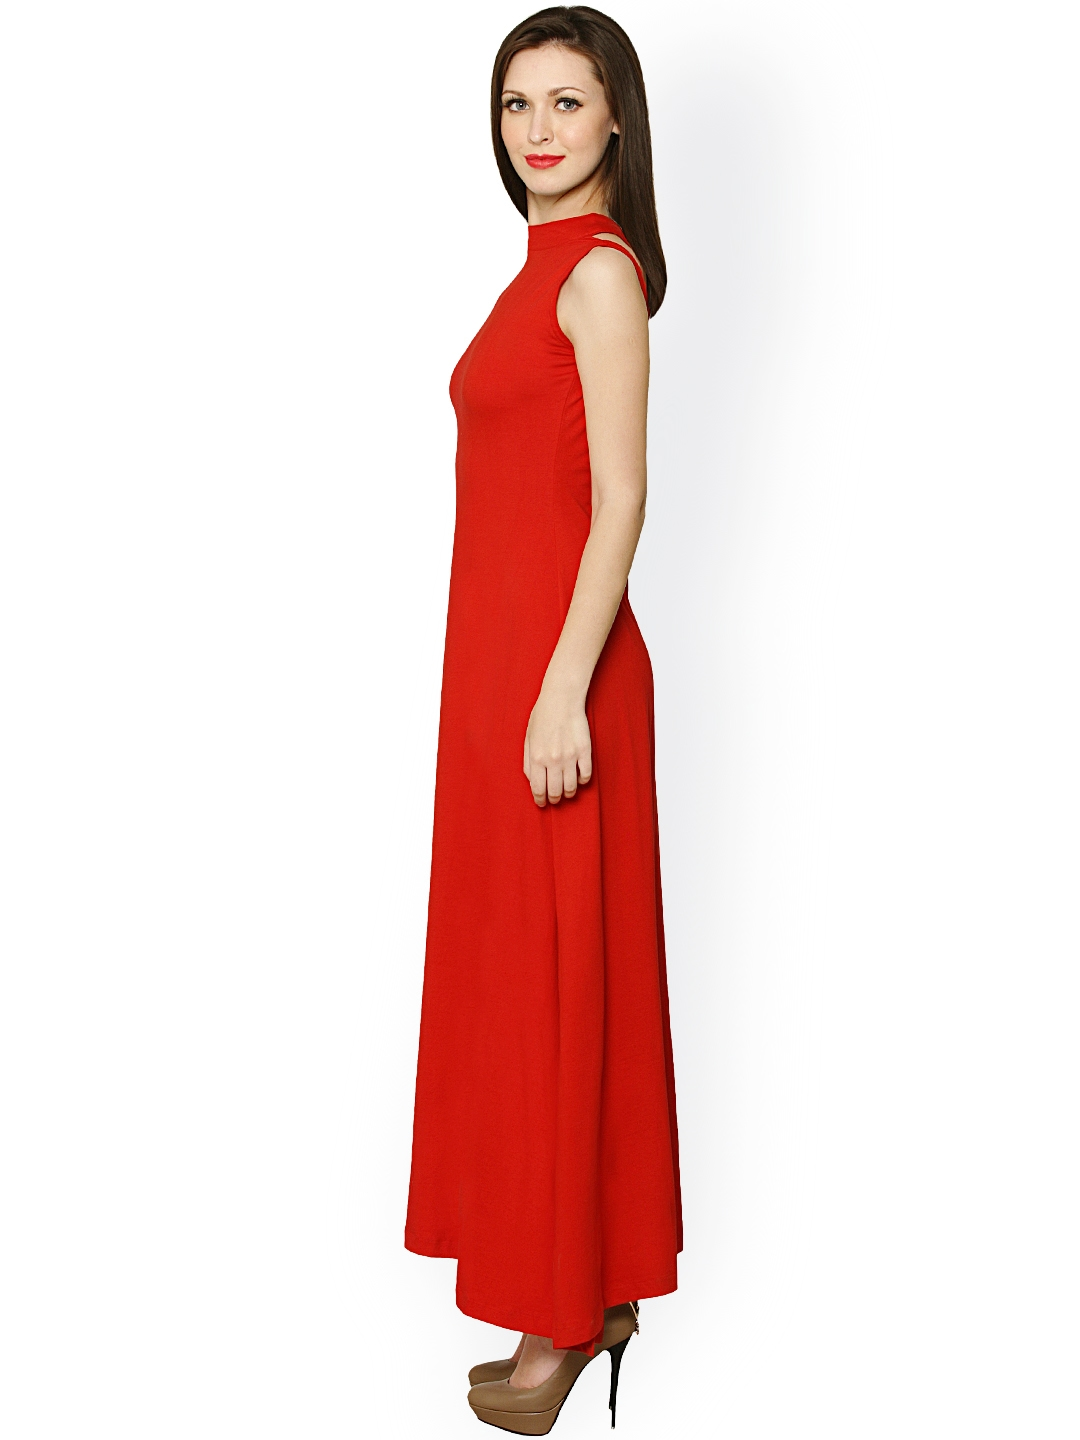 a2793752a1d Buy Miss Chase Red Maxi Dress - Dresses for Women 1193351